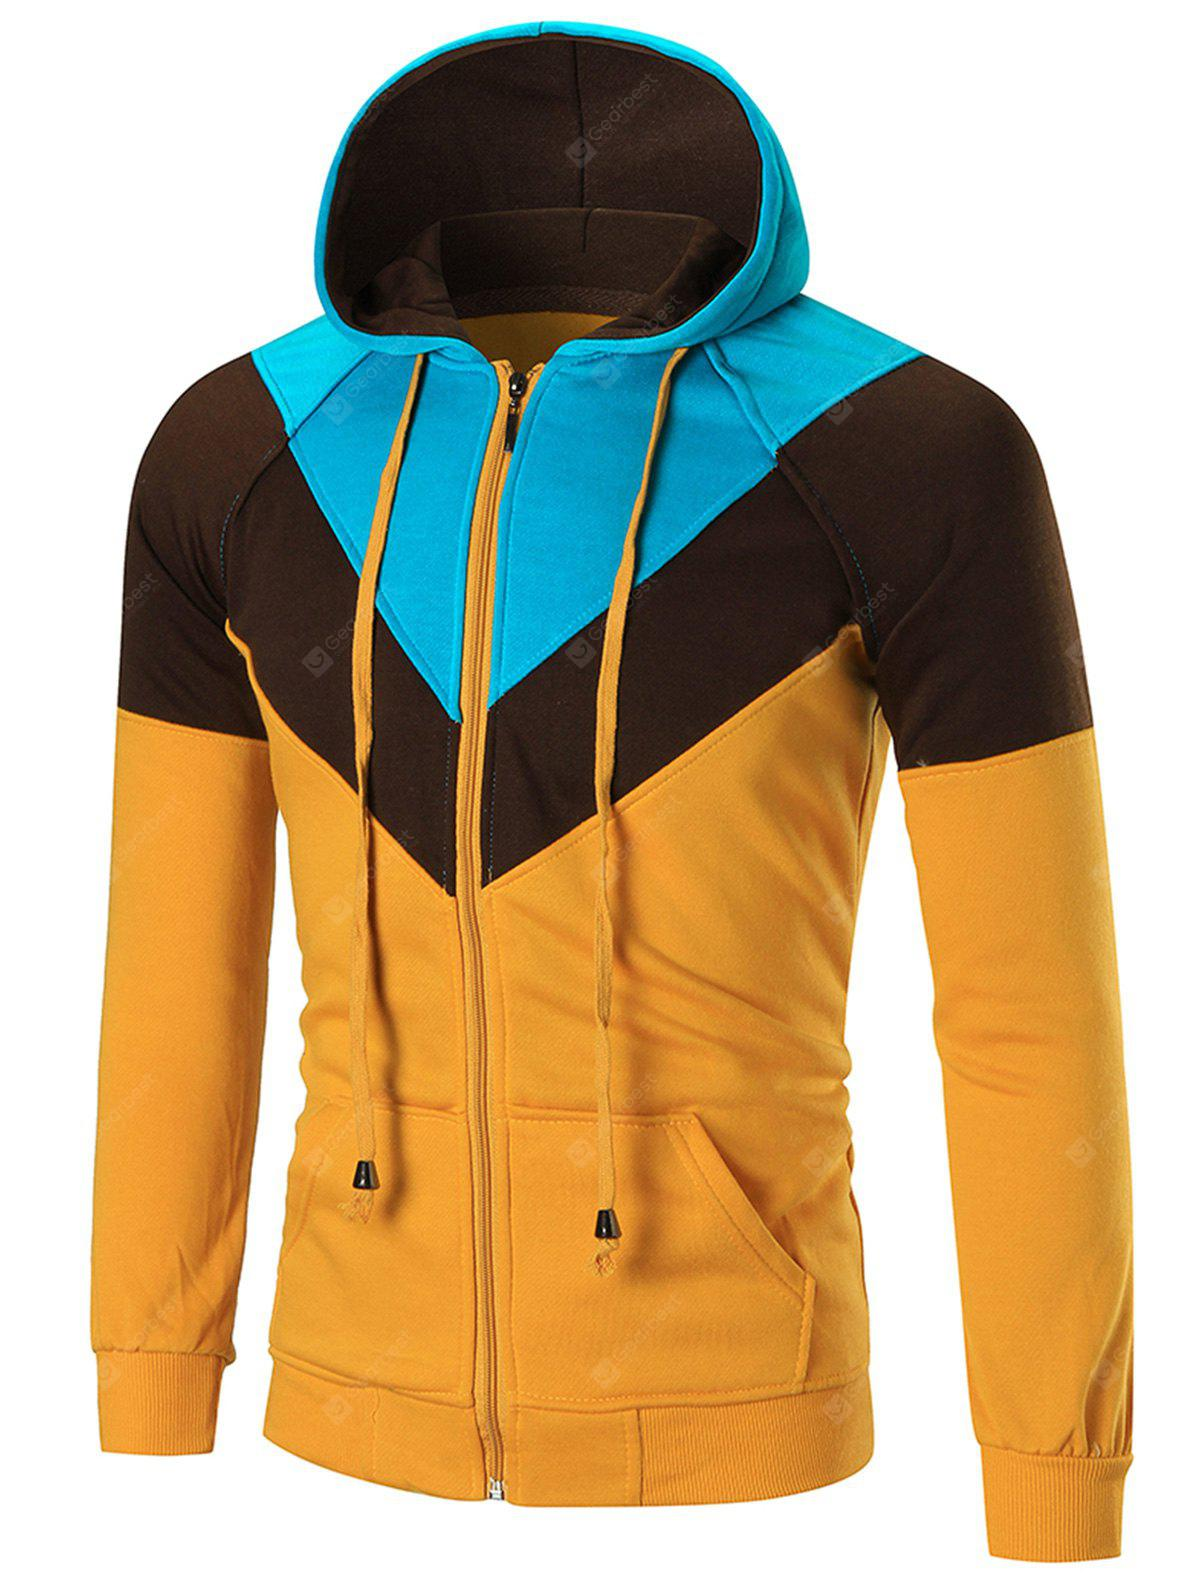 Casual Colorblocked Zip Up Hoodie